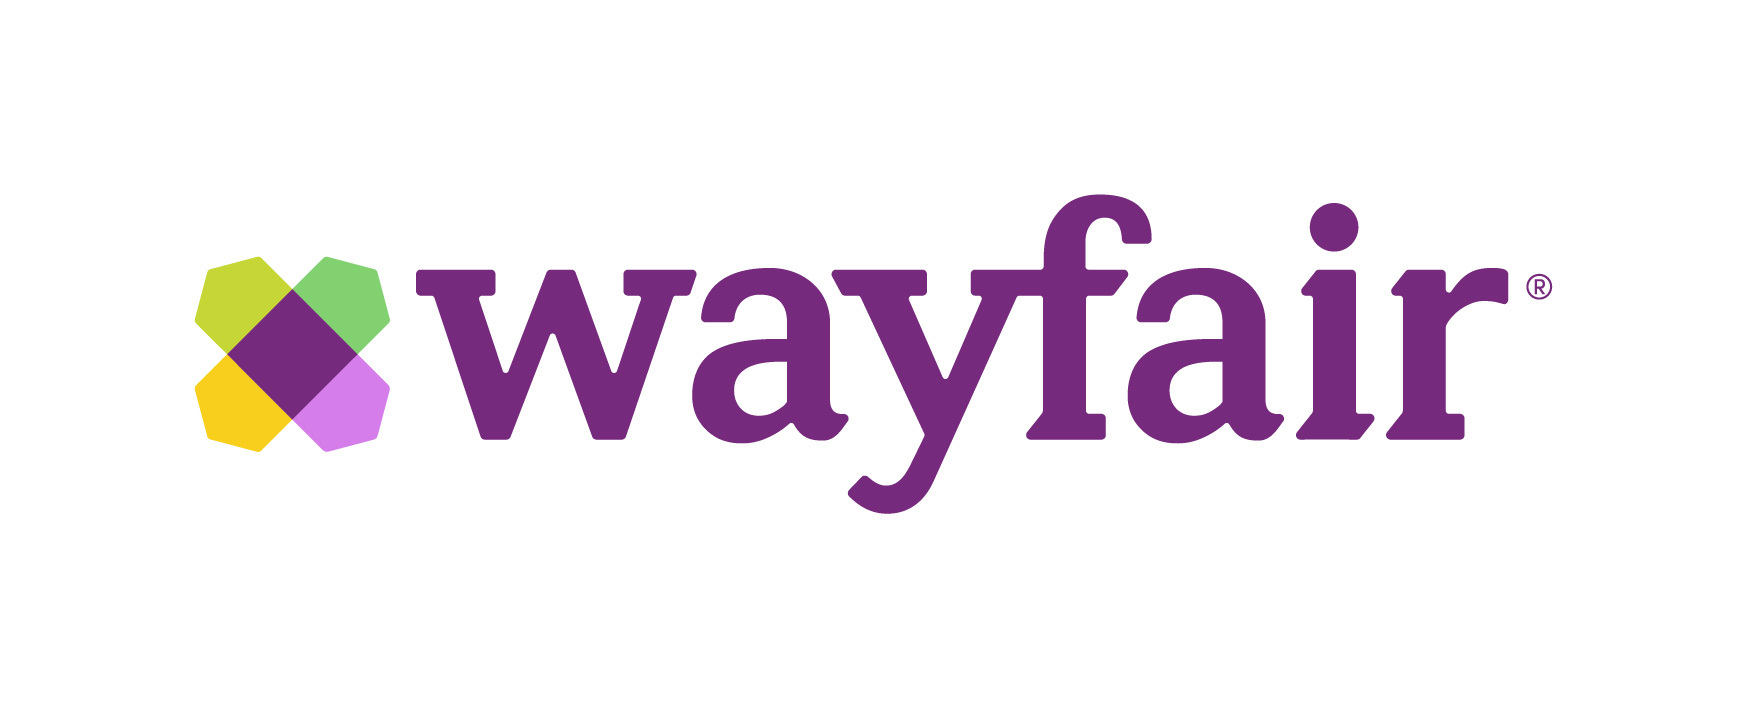 wayfair mobile app lets shoppers visualize furniture and